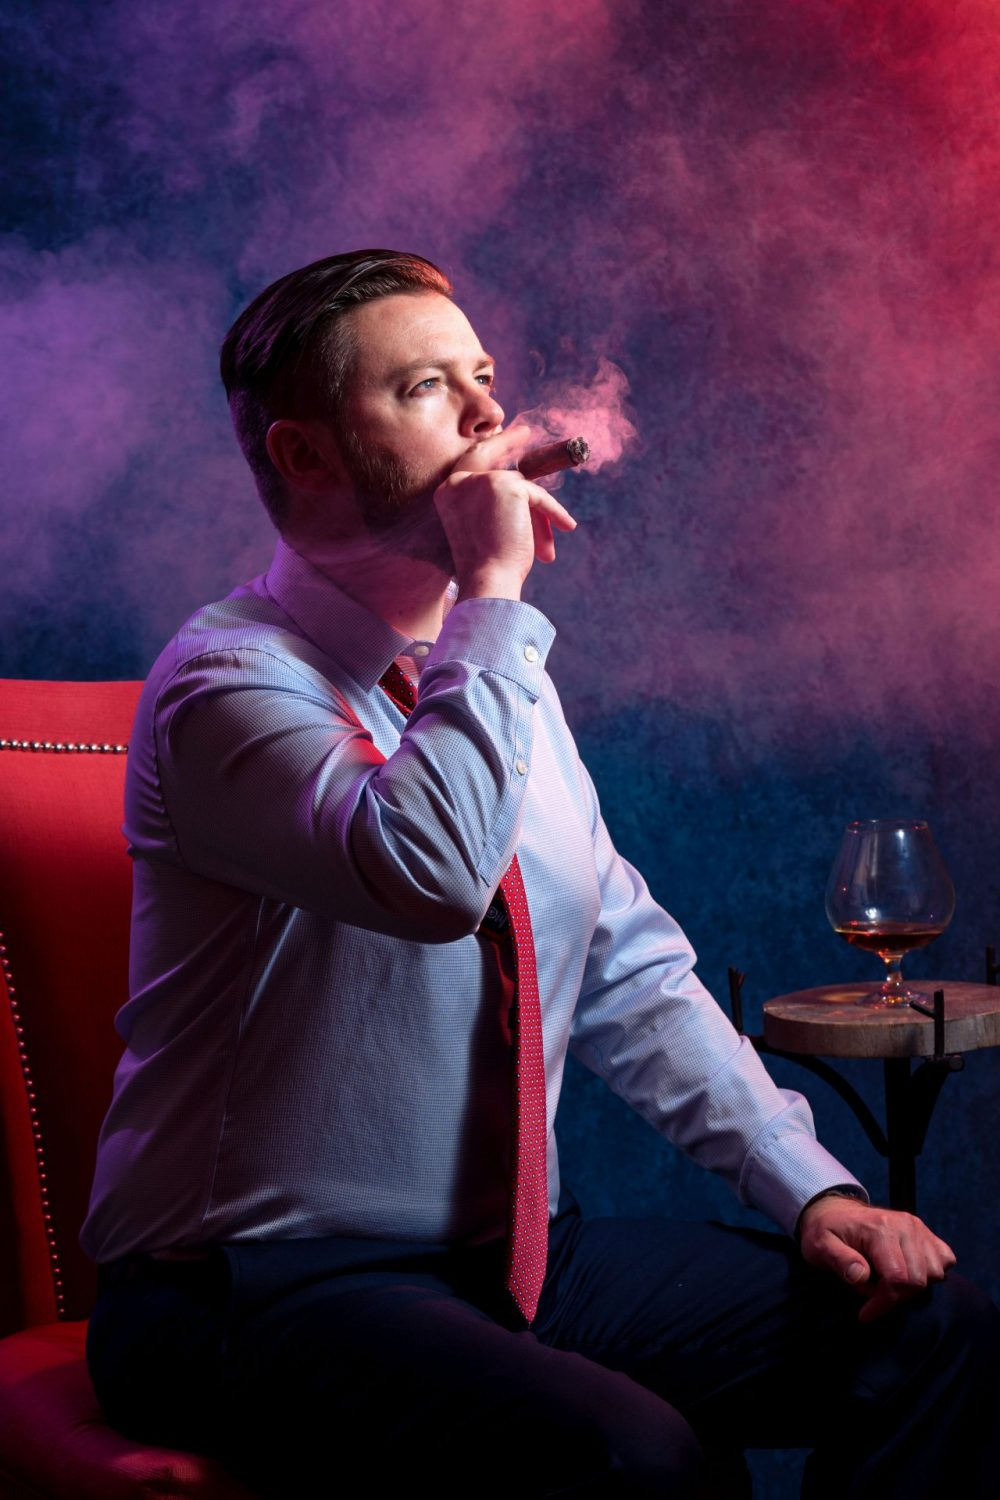 Man smoking in red chair Groom Cigar And Shots